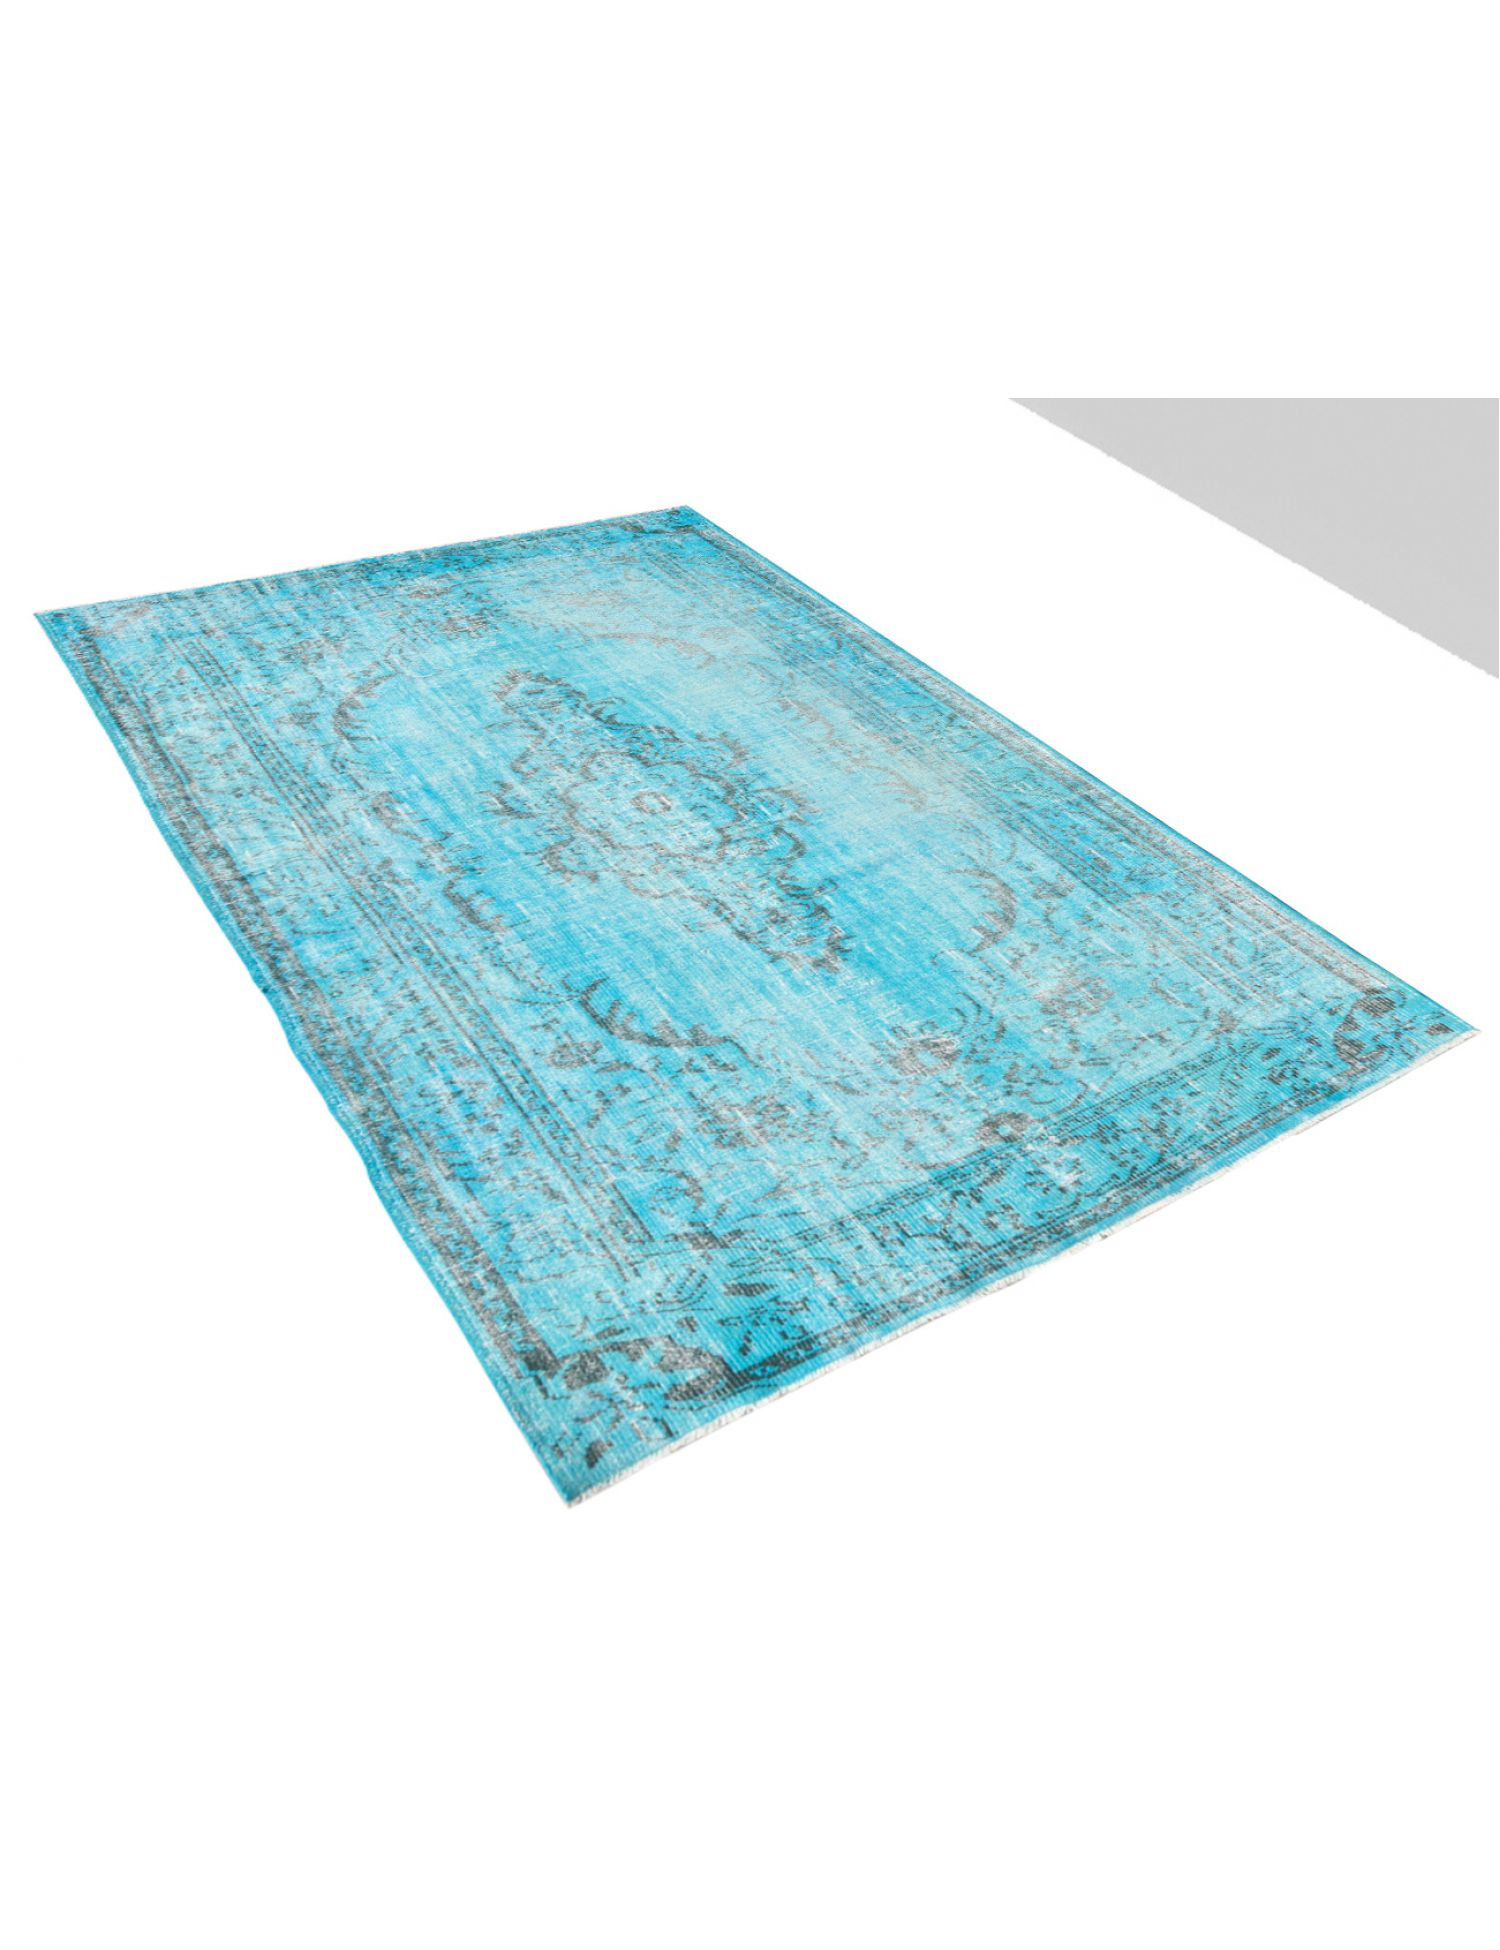 Vintage Carpet  blue <br/>292 x 183 cm